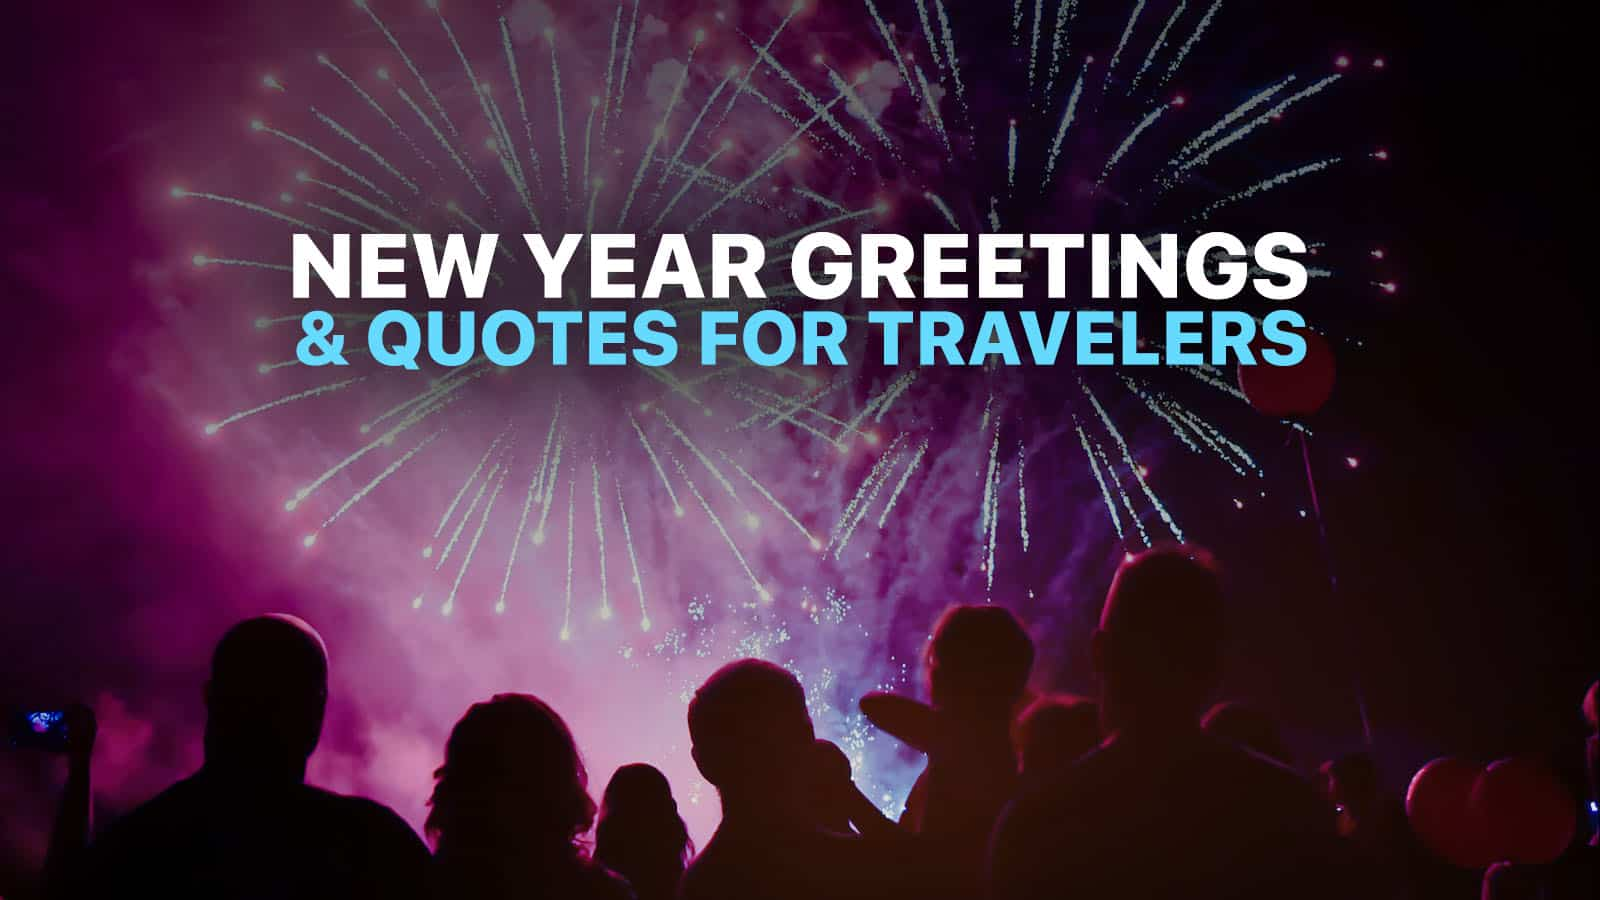 new year quotes wishes greetings for travelers the